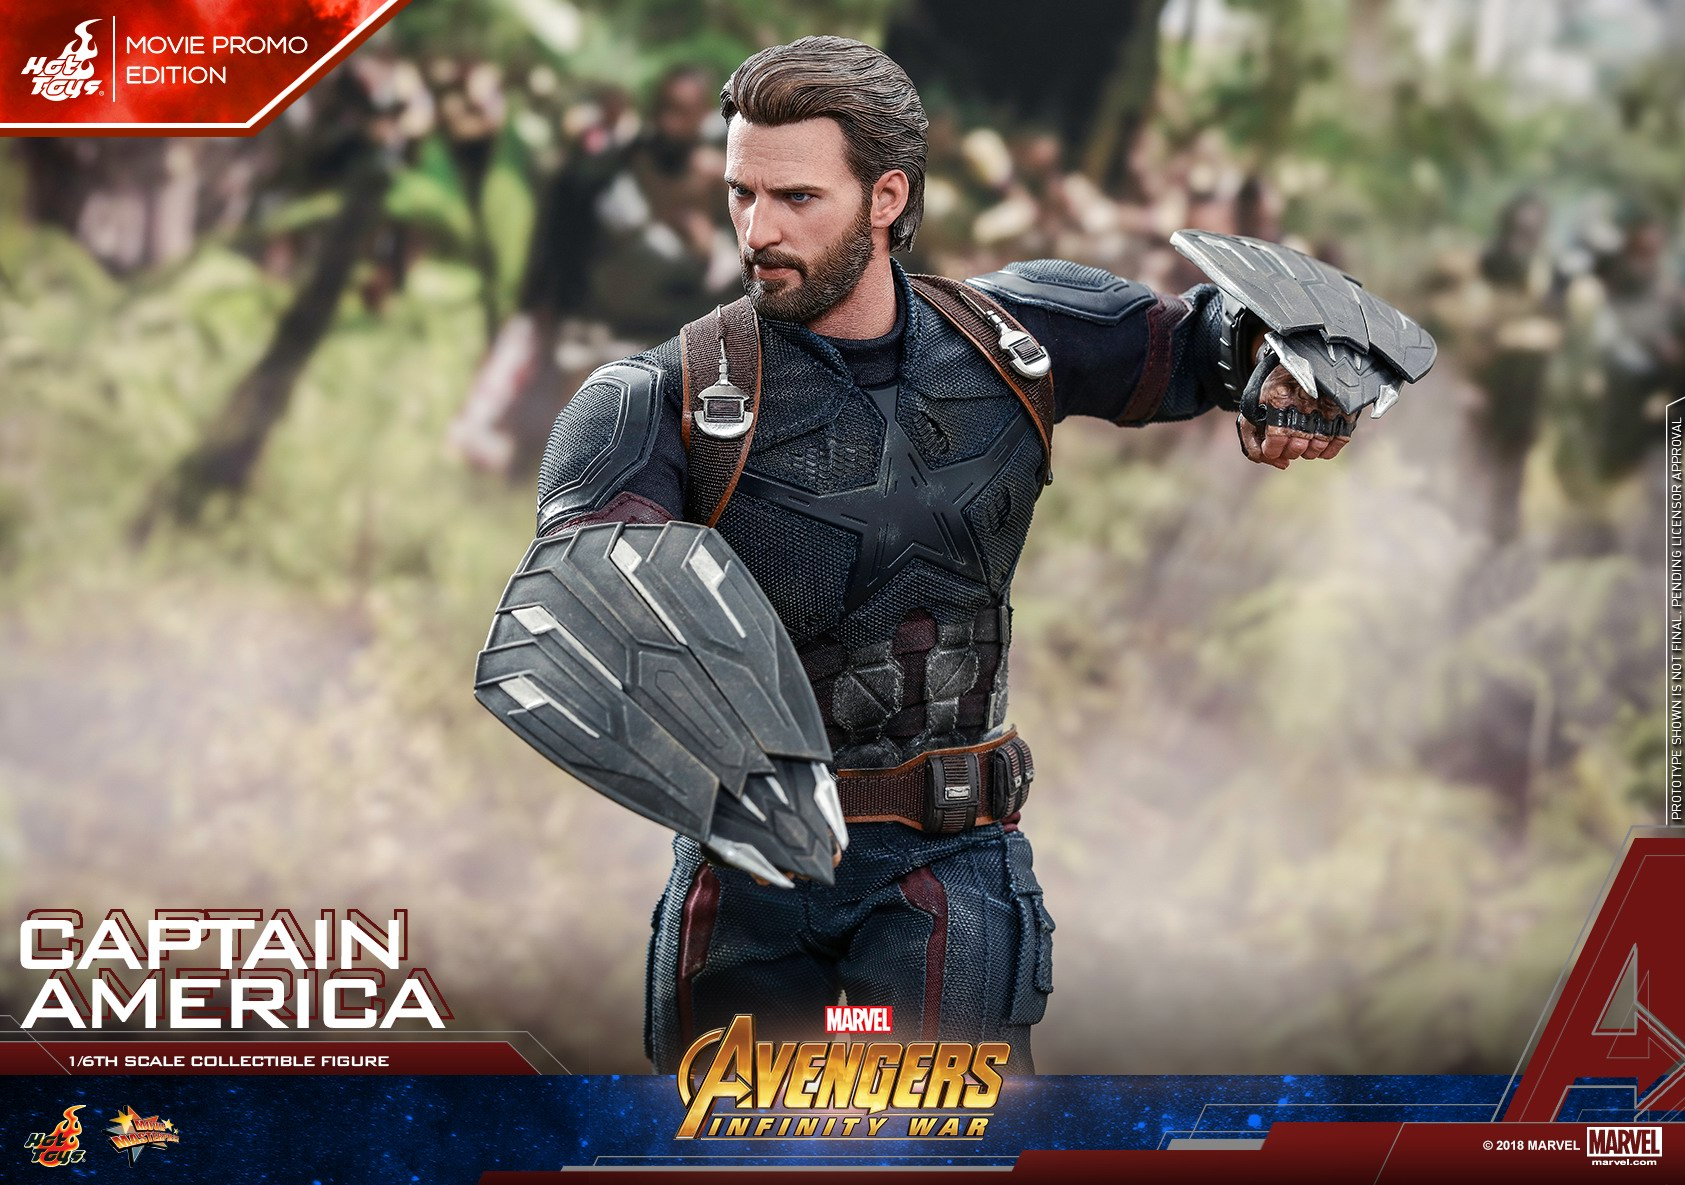 Hot Toys - AIW - Captain America collectible figure (Movie Promo)_PR13.jpg